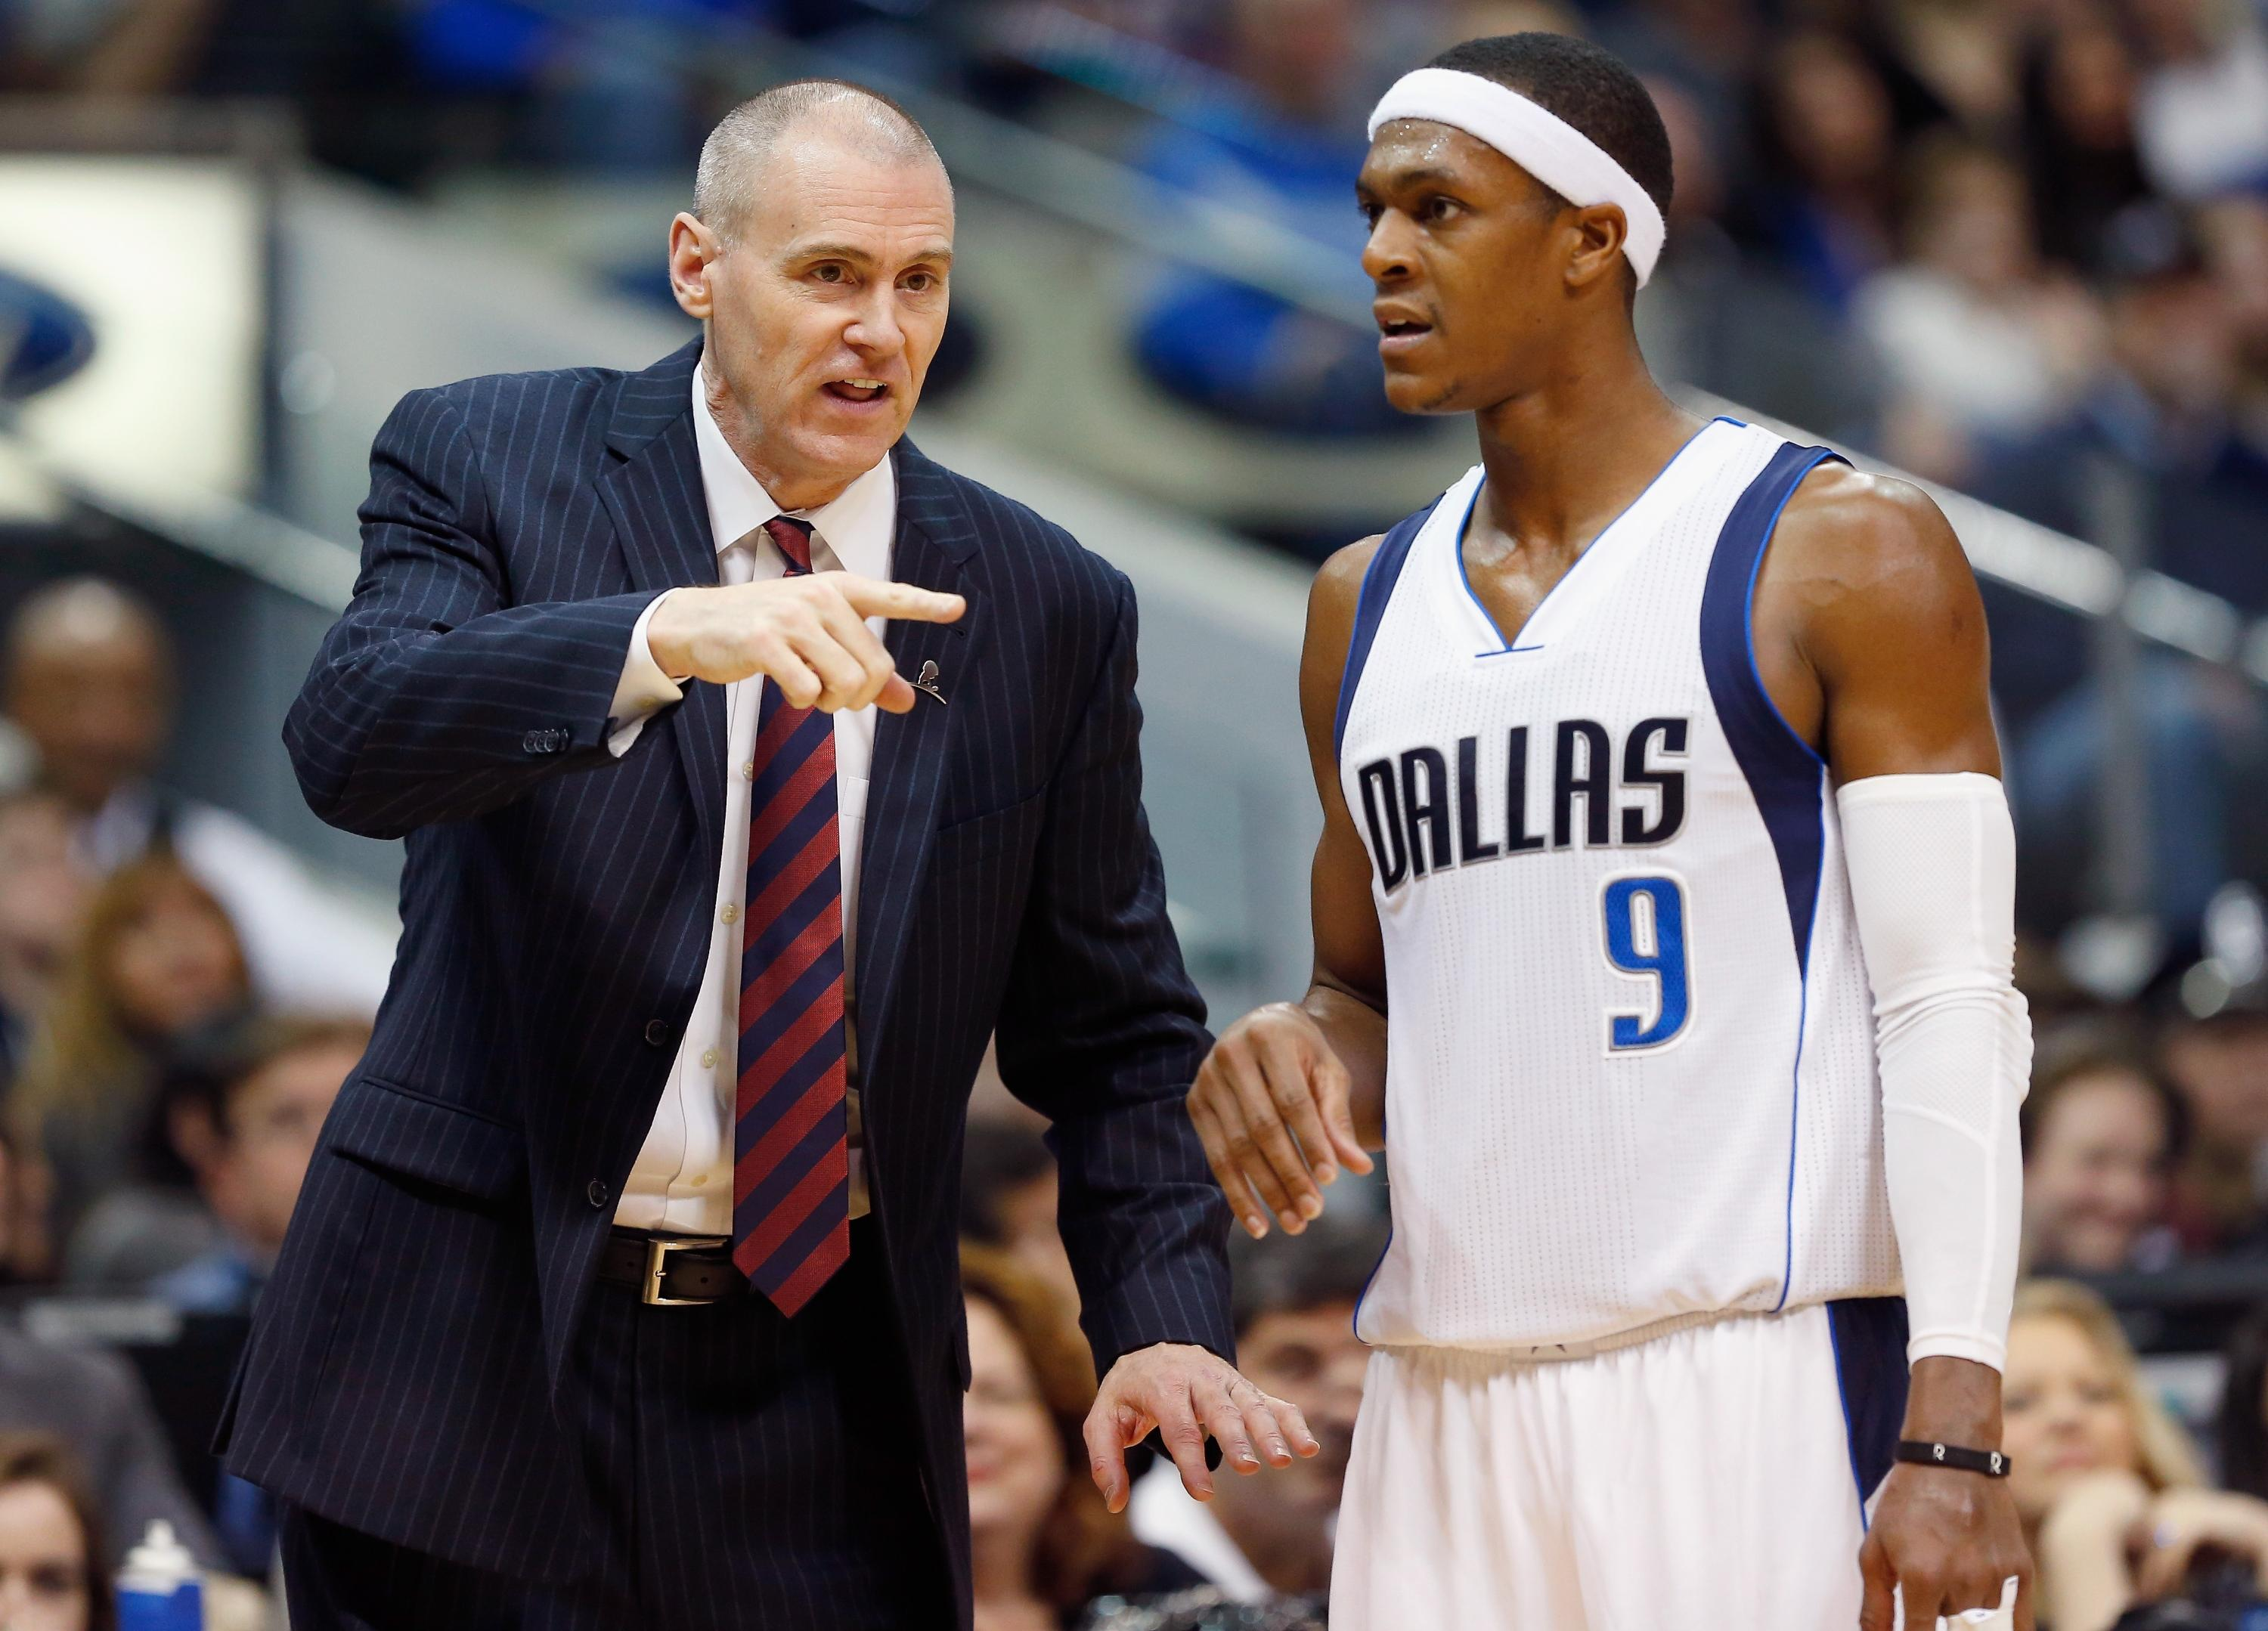 The 10-man rotation, starring Rondo, Carlisle and scenes from failed marriages